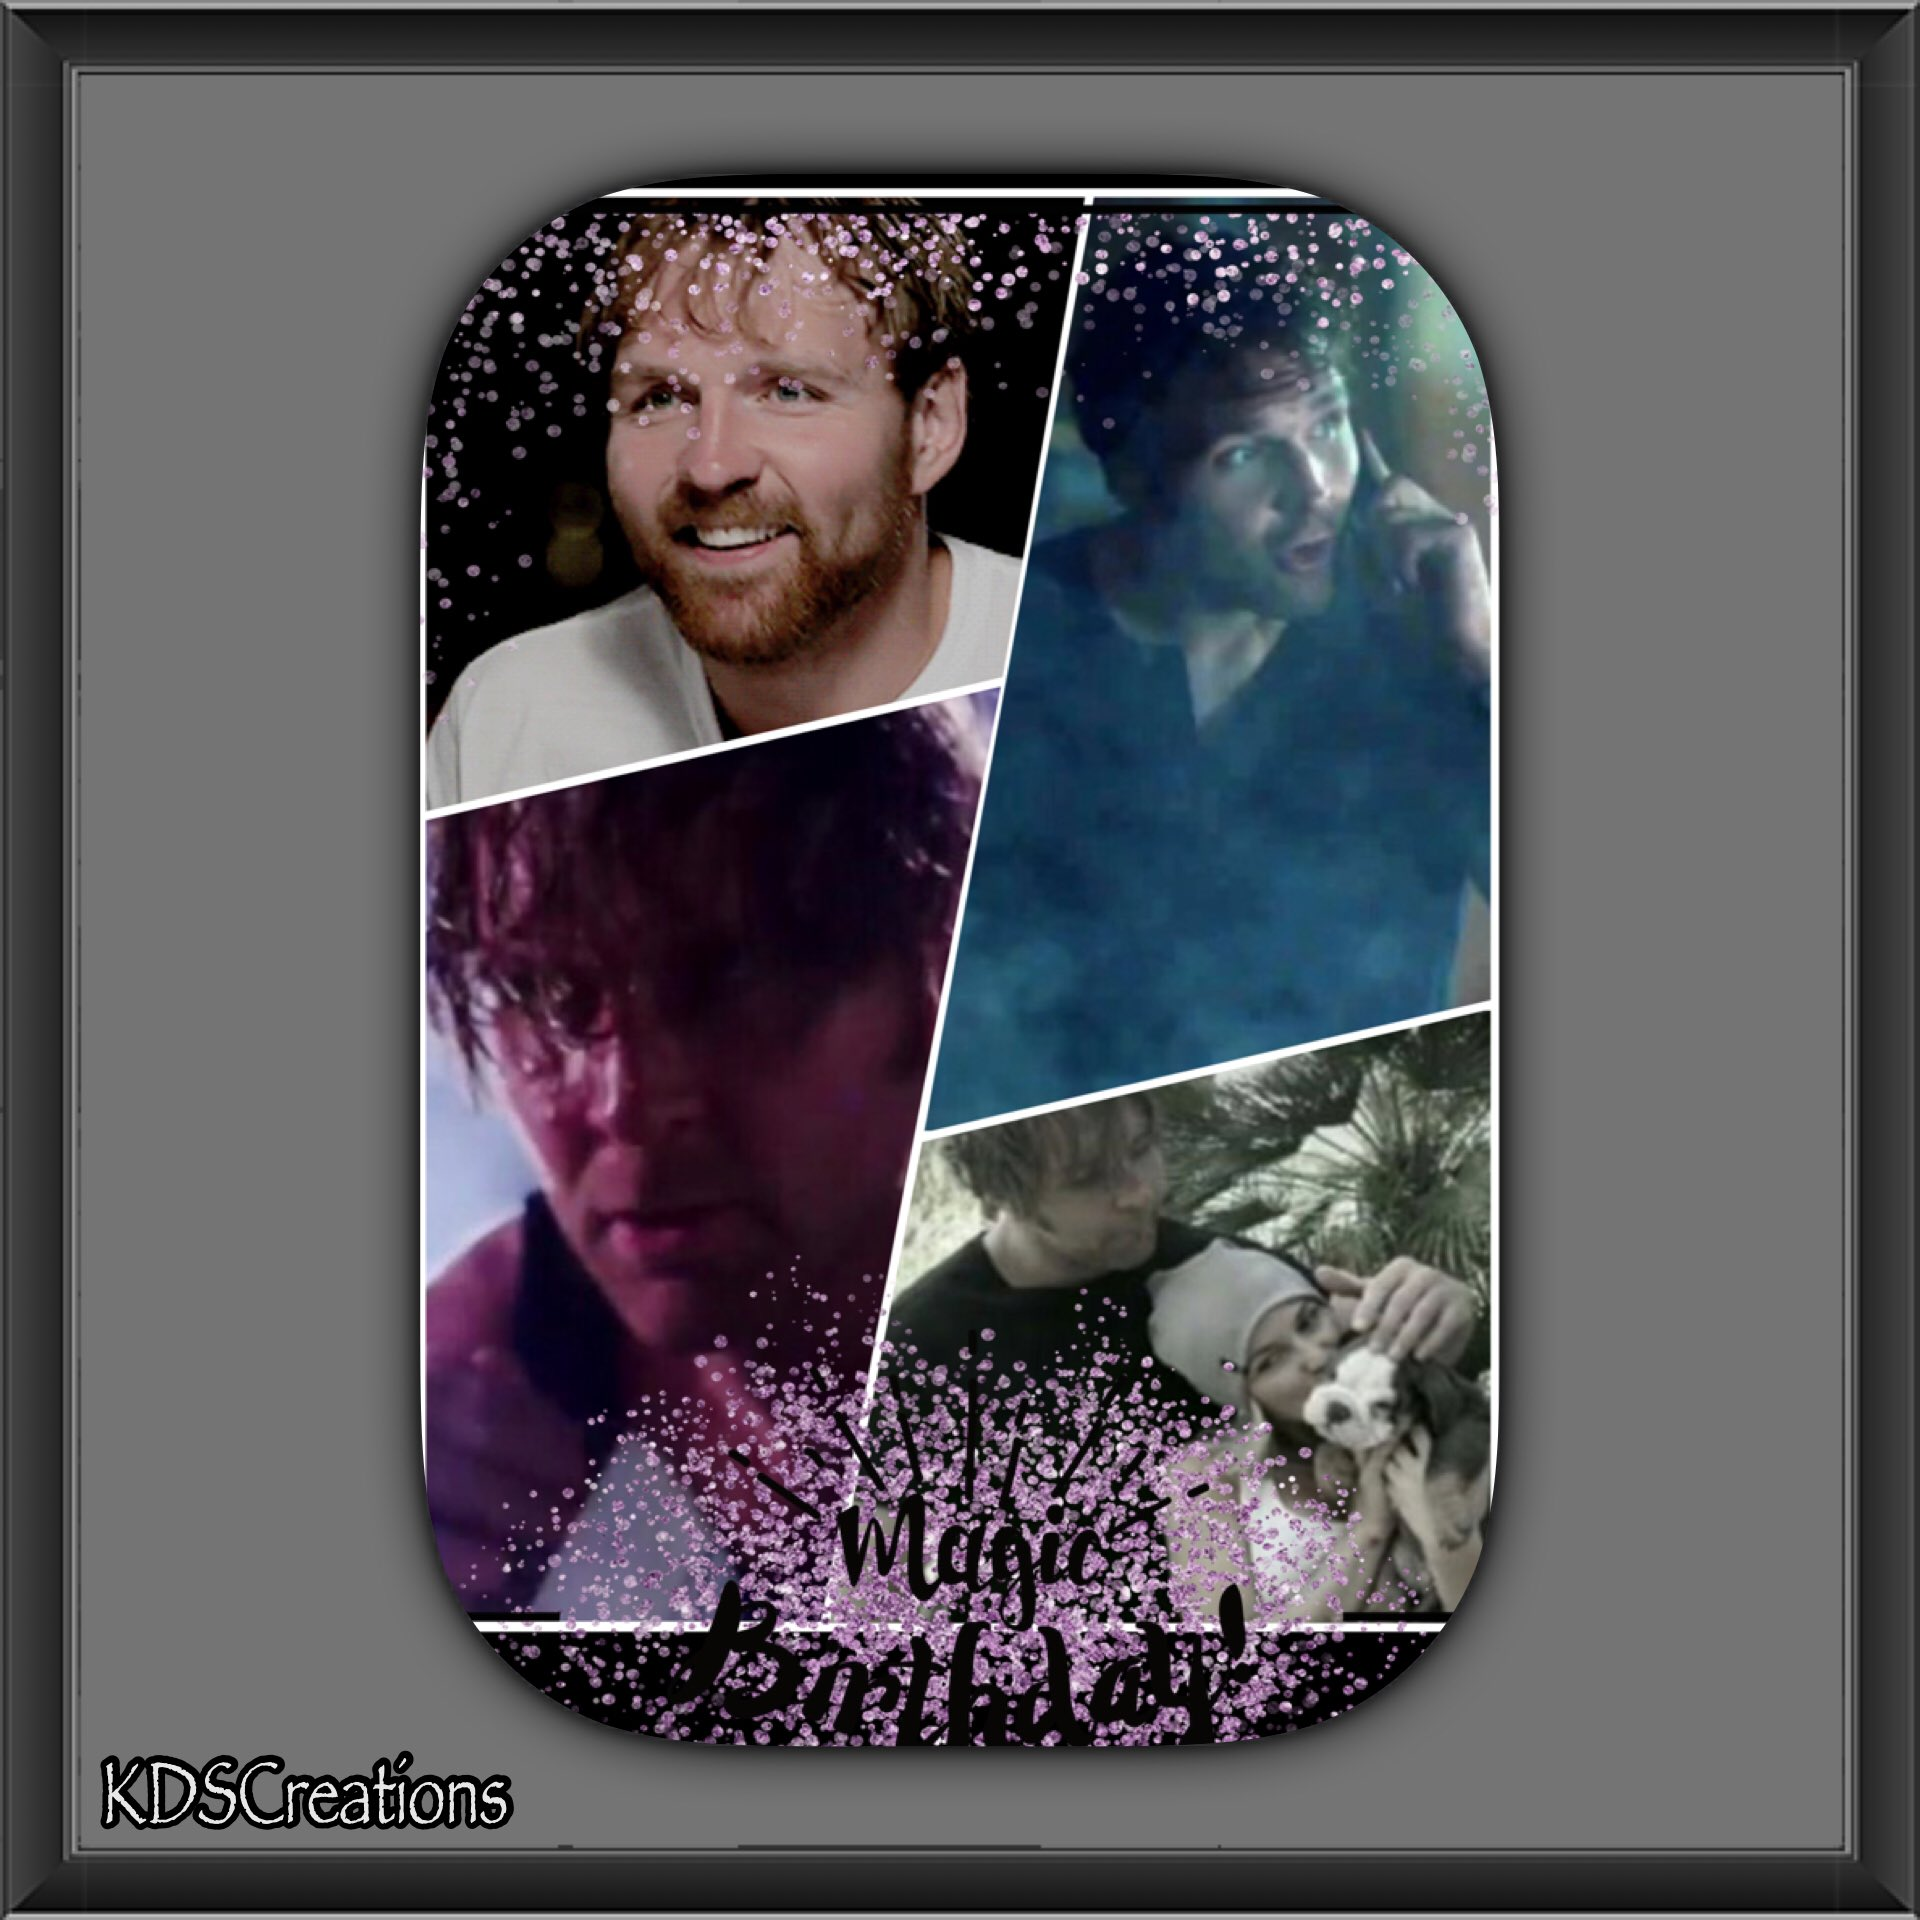 in celebration for his birthday on Thursday. Happy early 32nd Dean Ambrose.